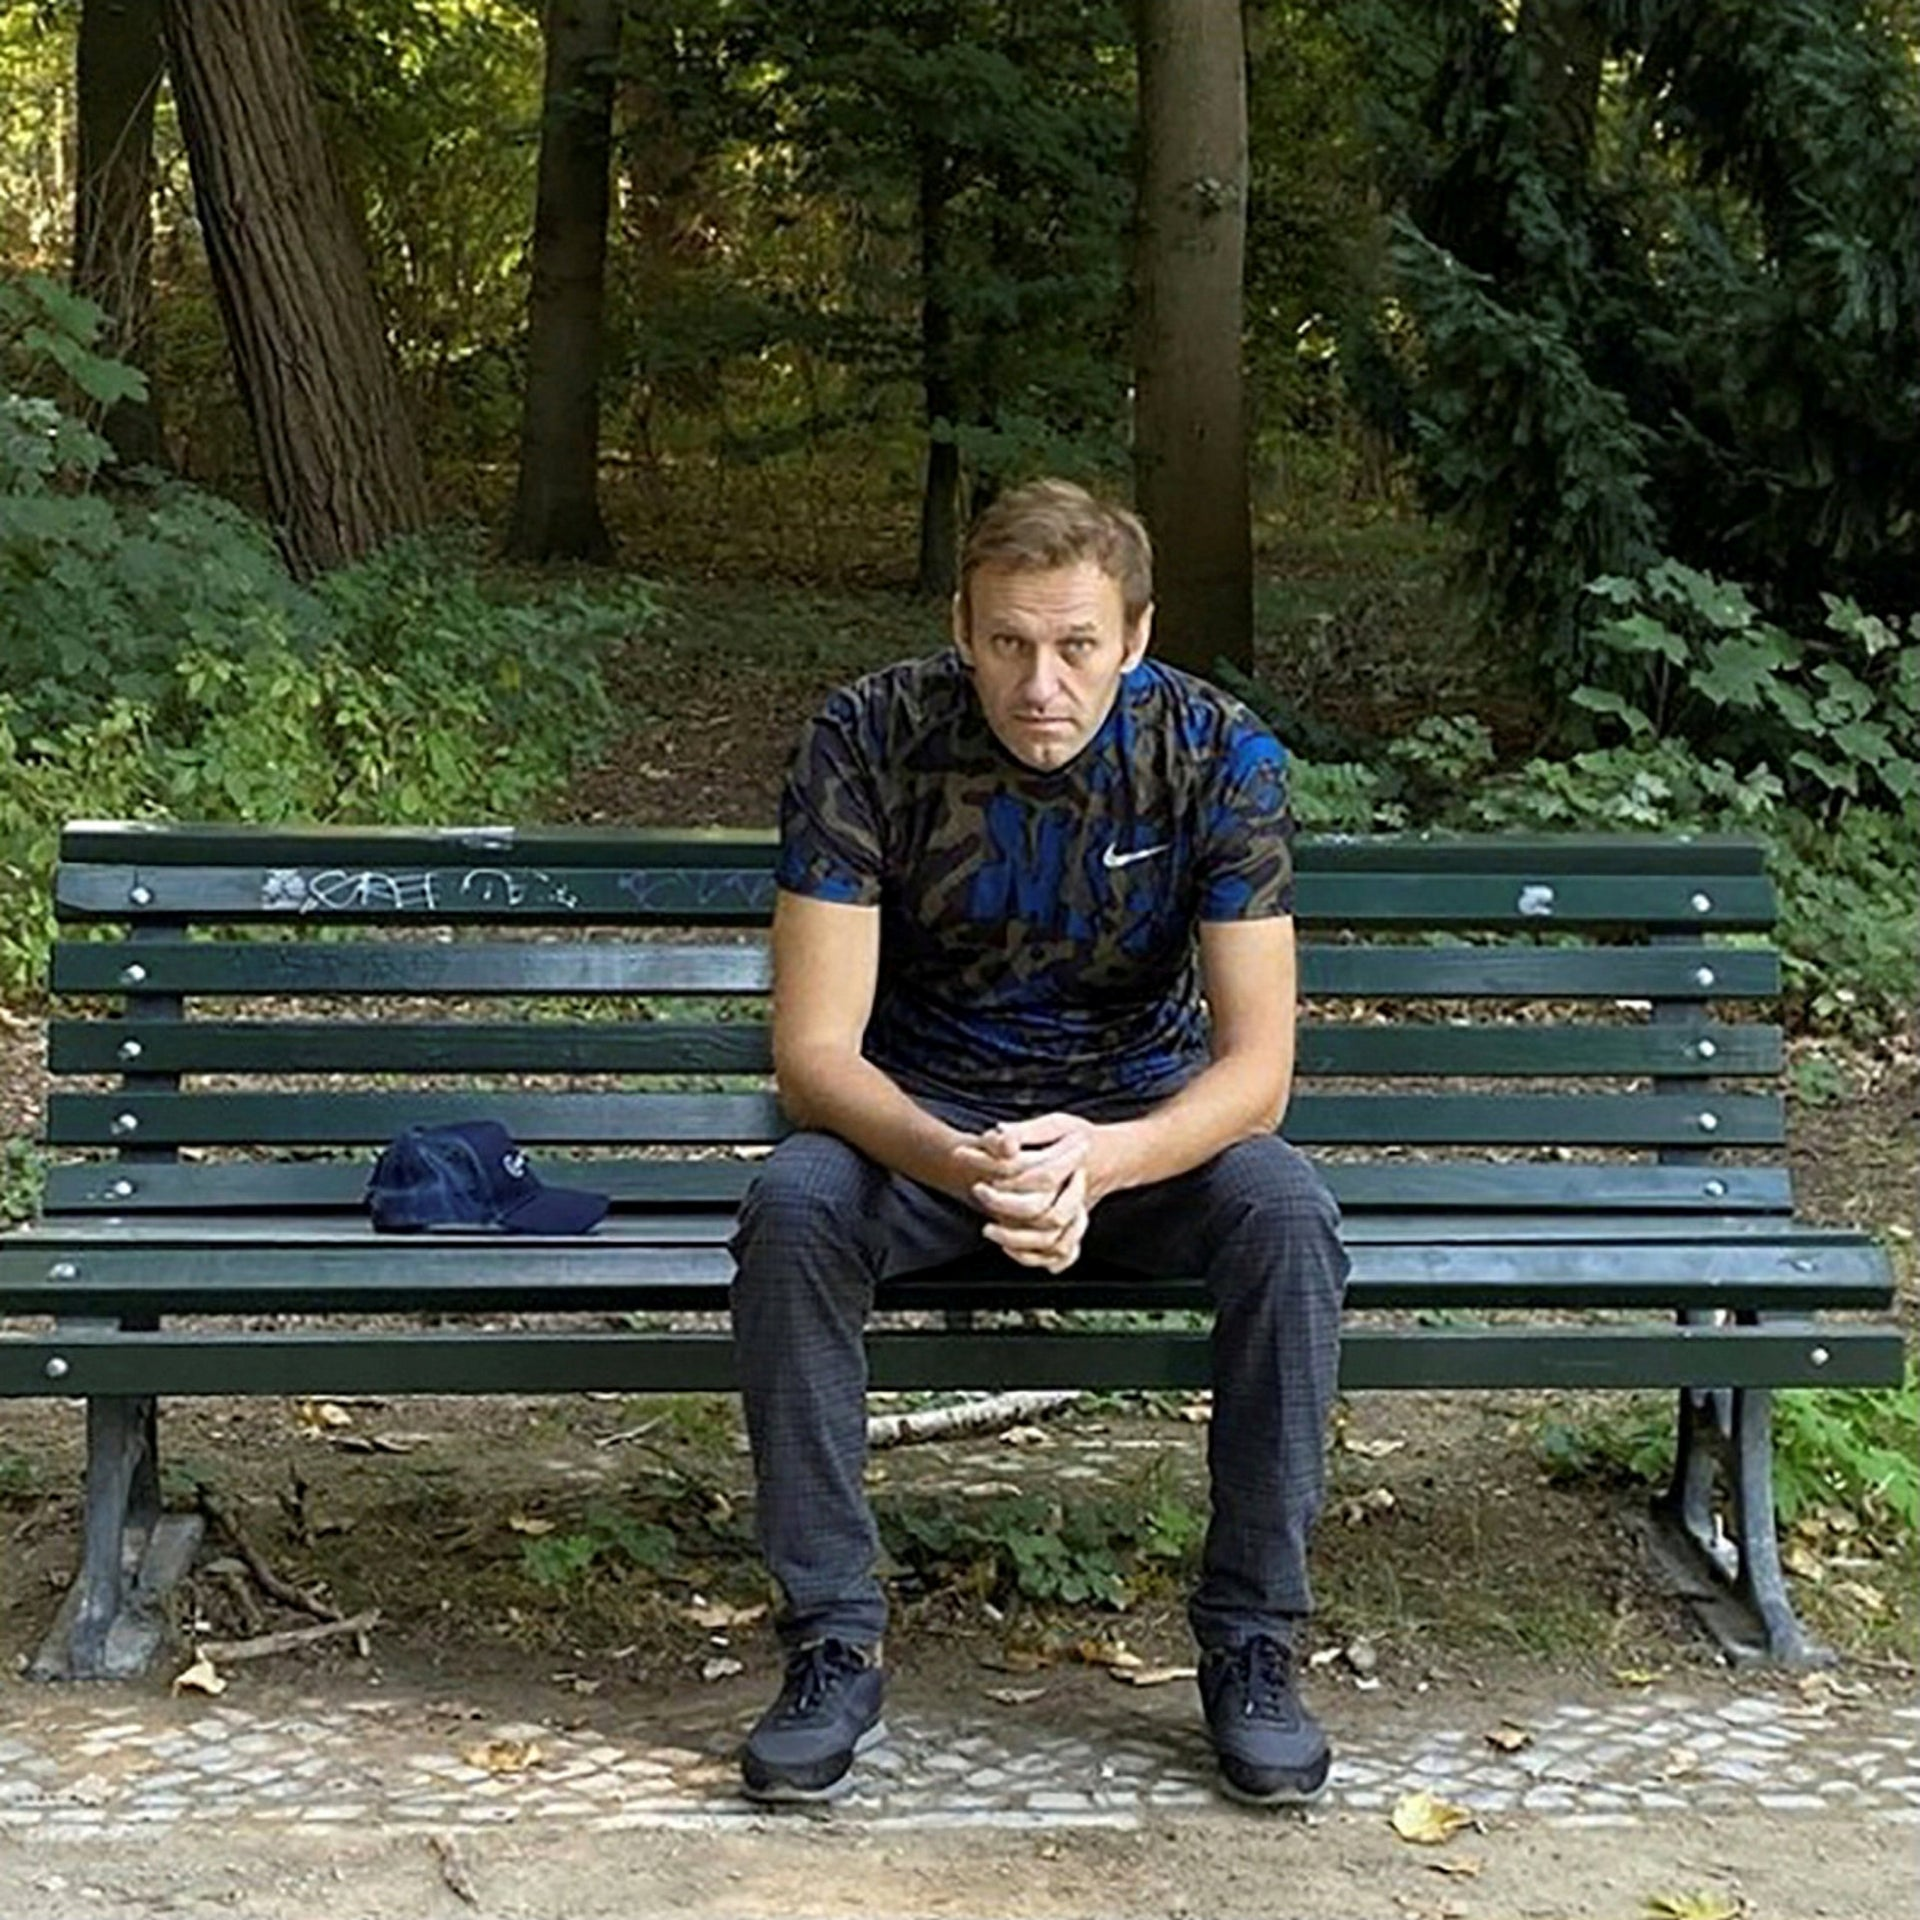 Navalny sits on a bench while posing for a picture in Berlin, Germany, in this undated image obtained from social media September 23, 2020.